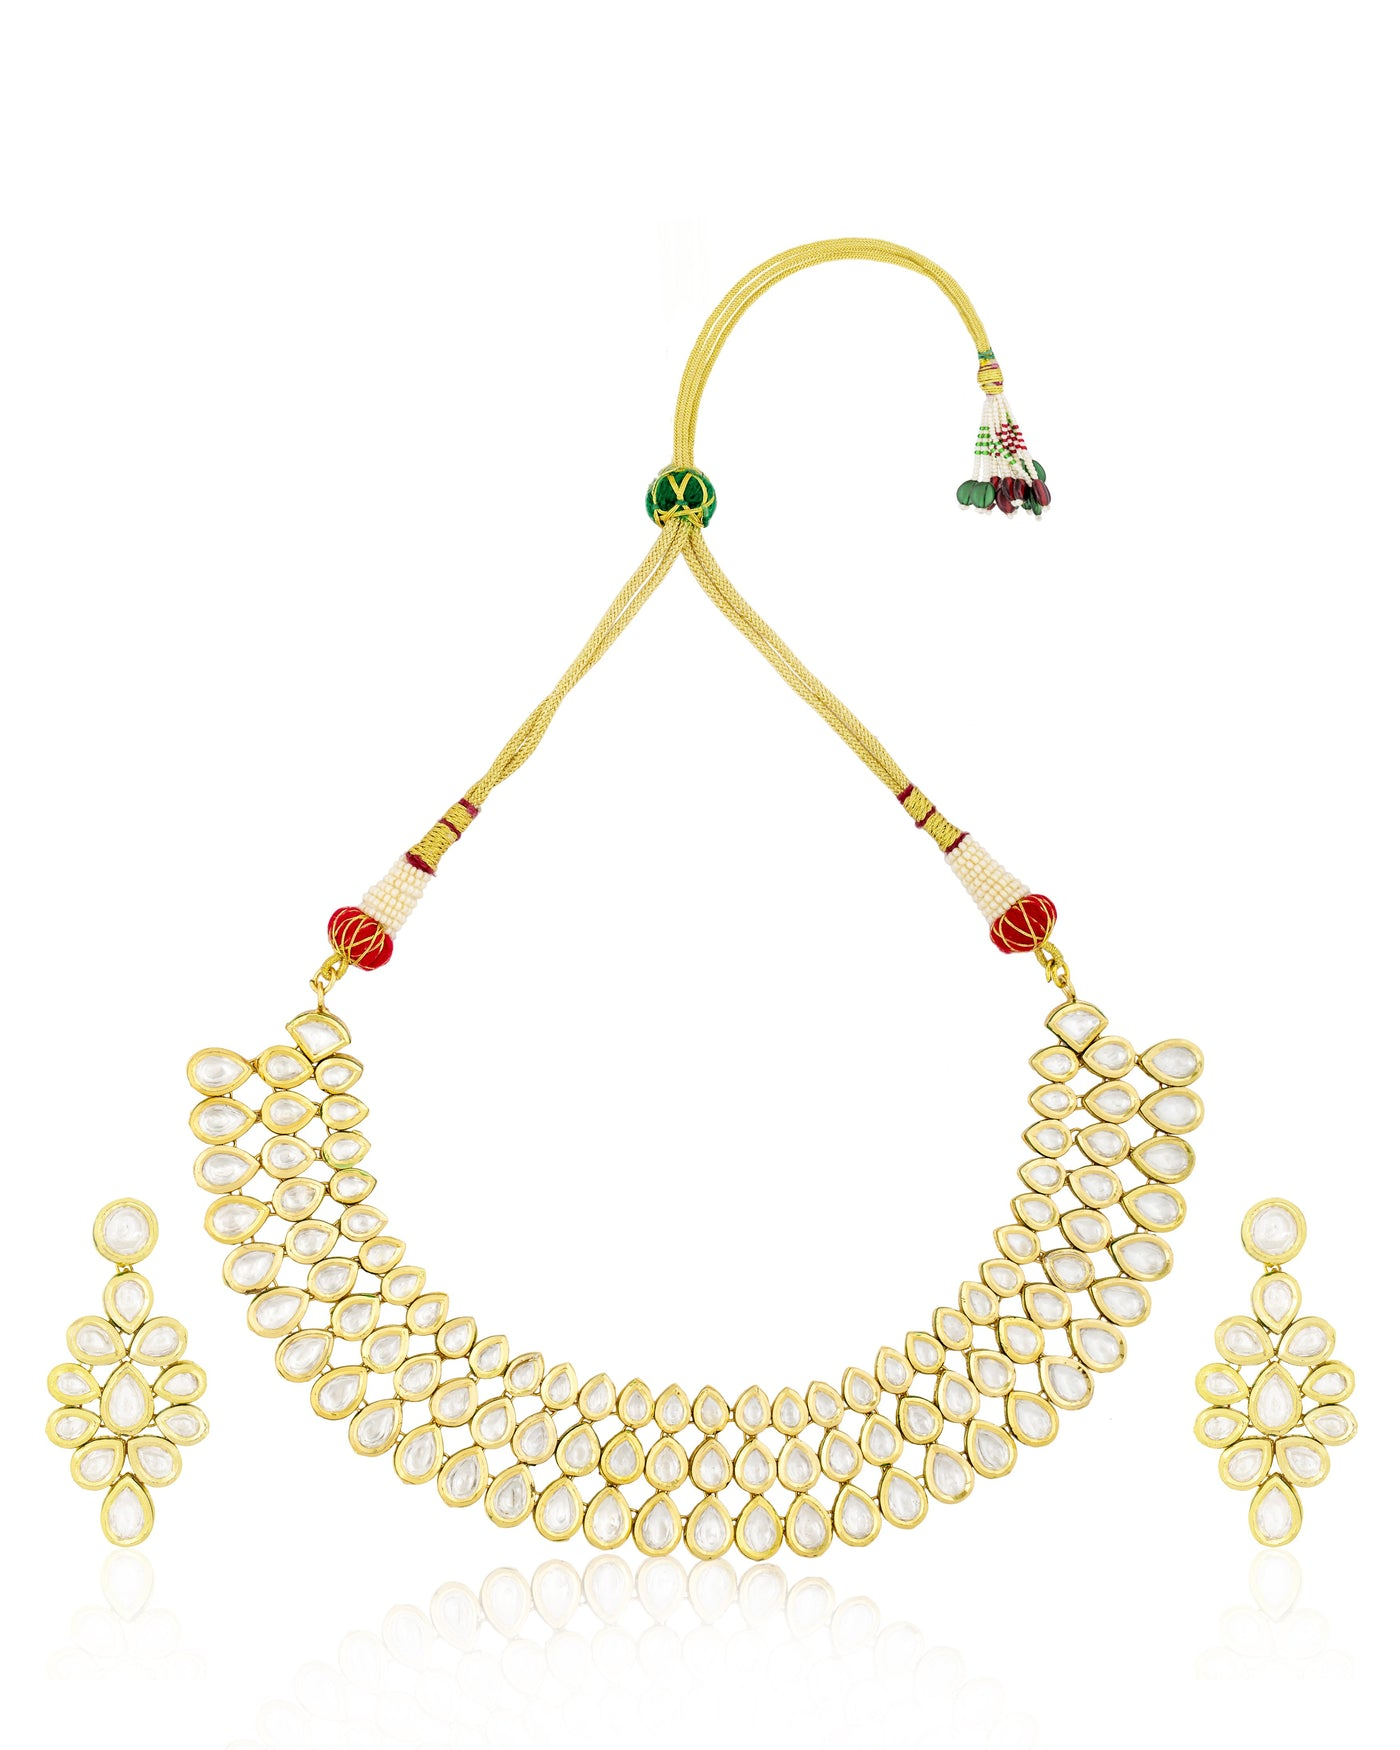 dress - Necklace Elegant styles pictures video